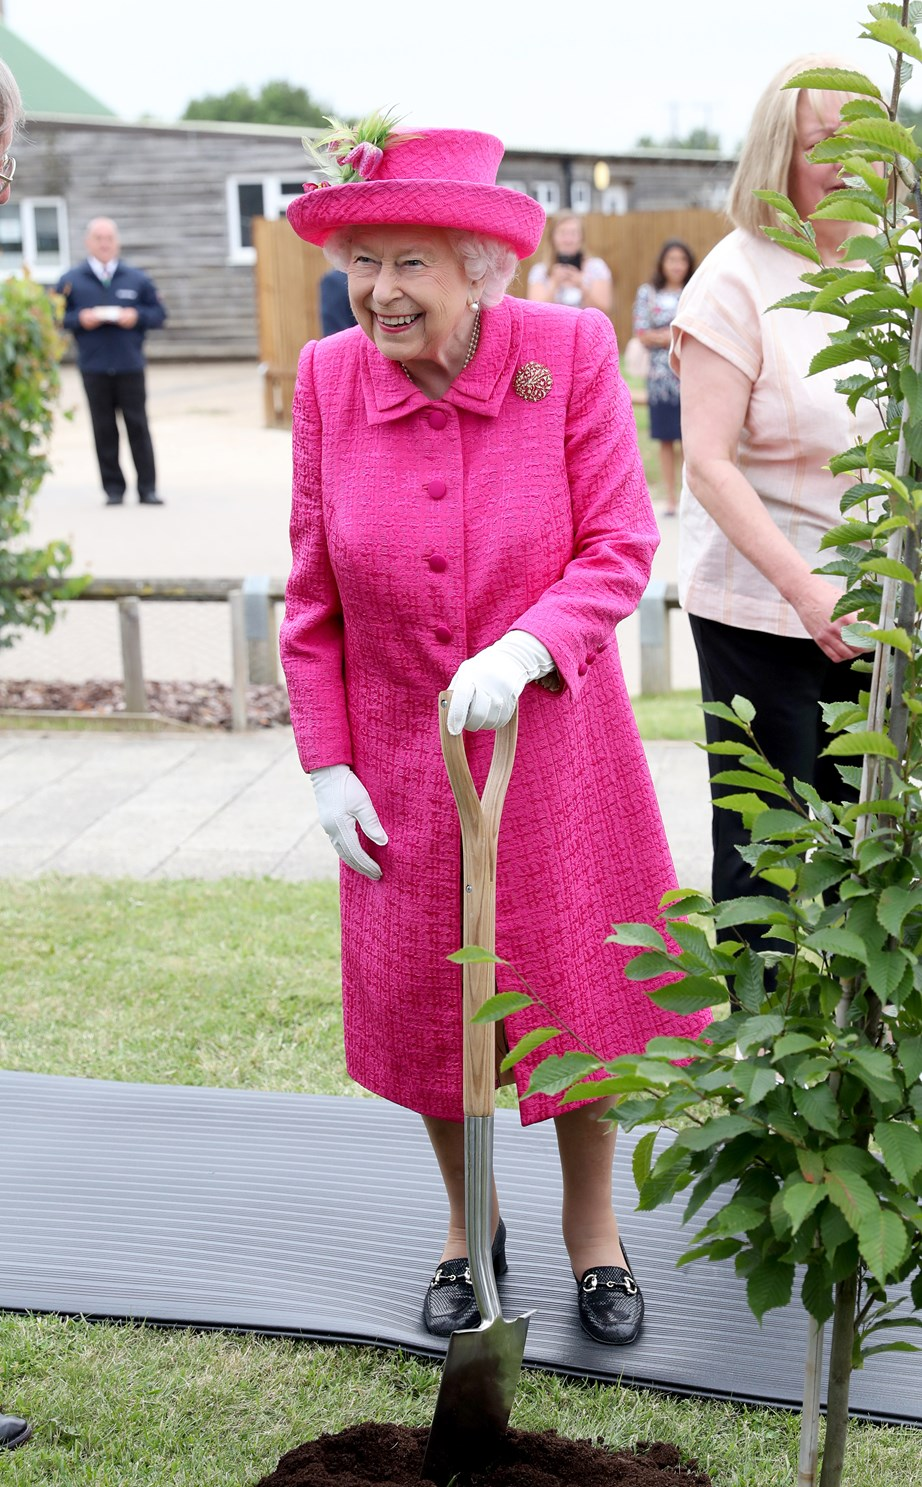 The Queen earlier this week, planting a tree in Cambridge. *(Image: Getty)*